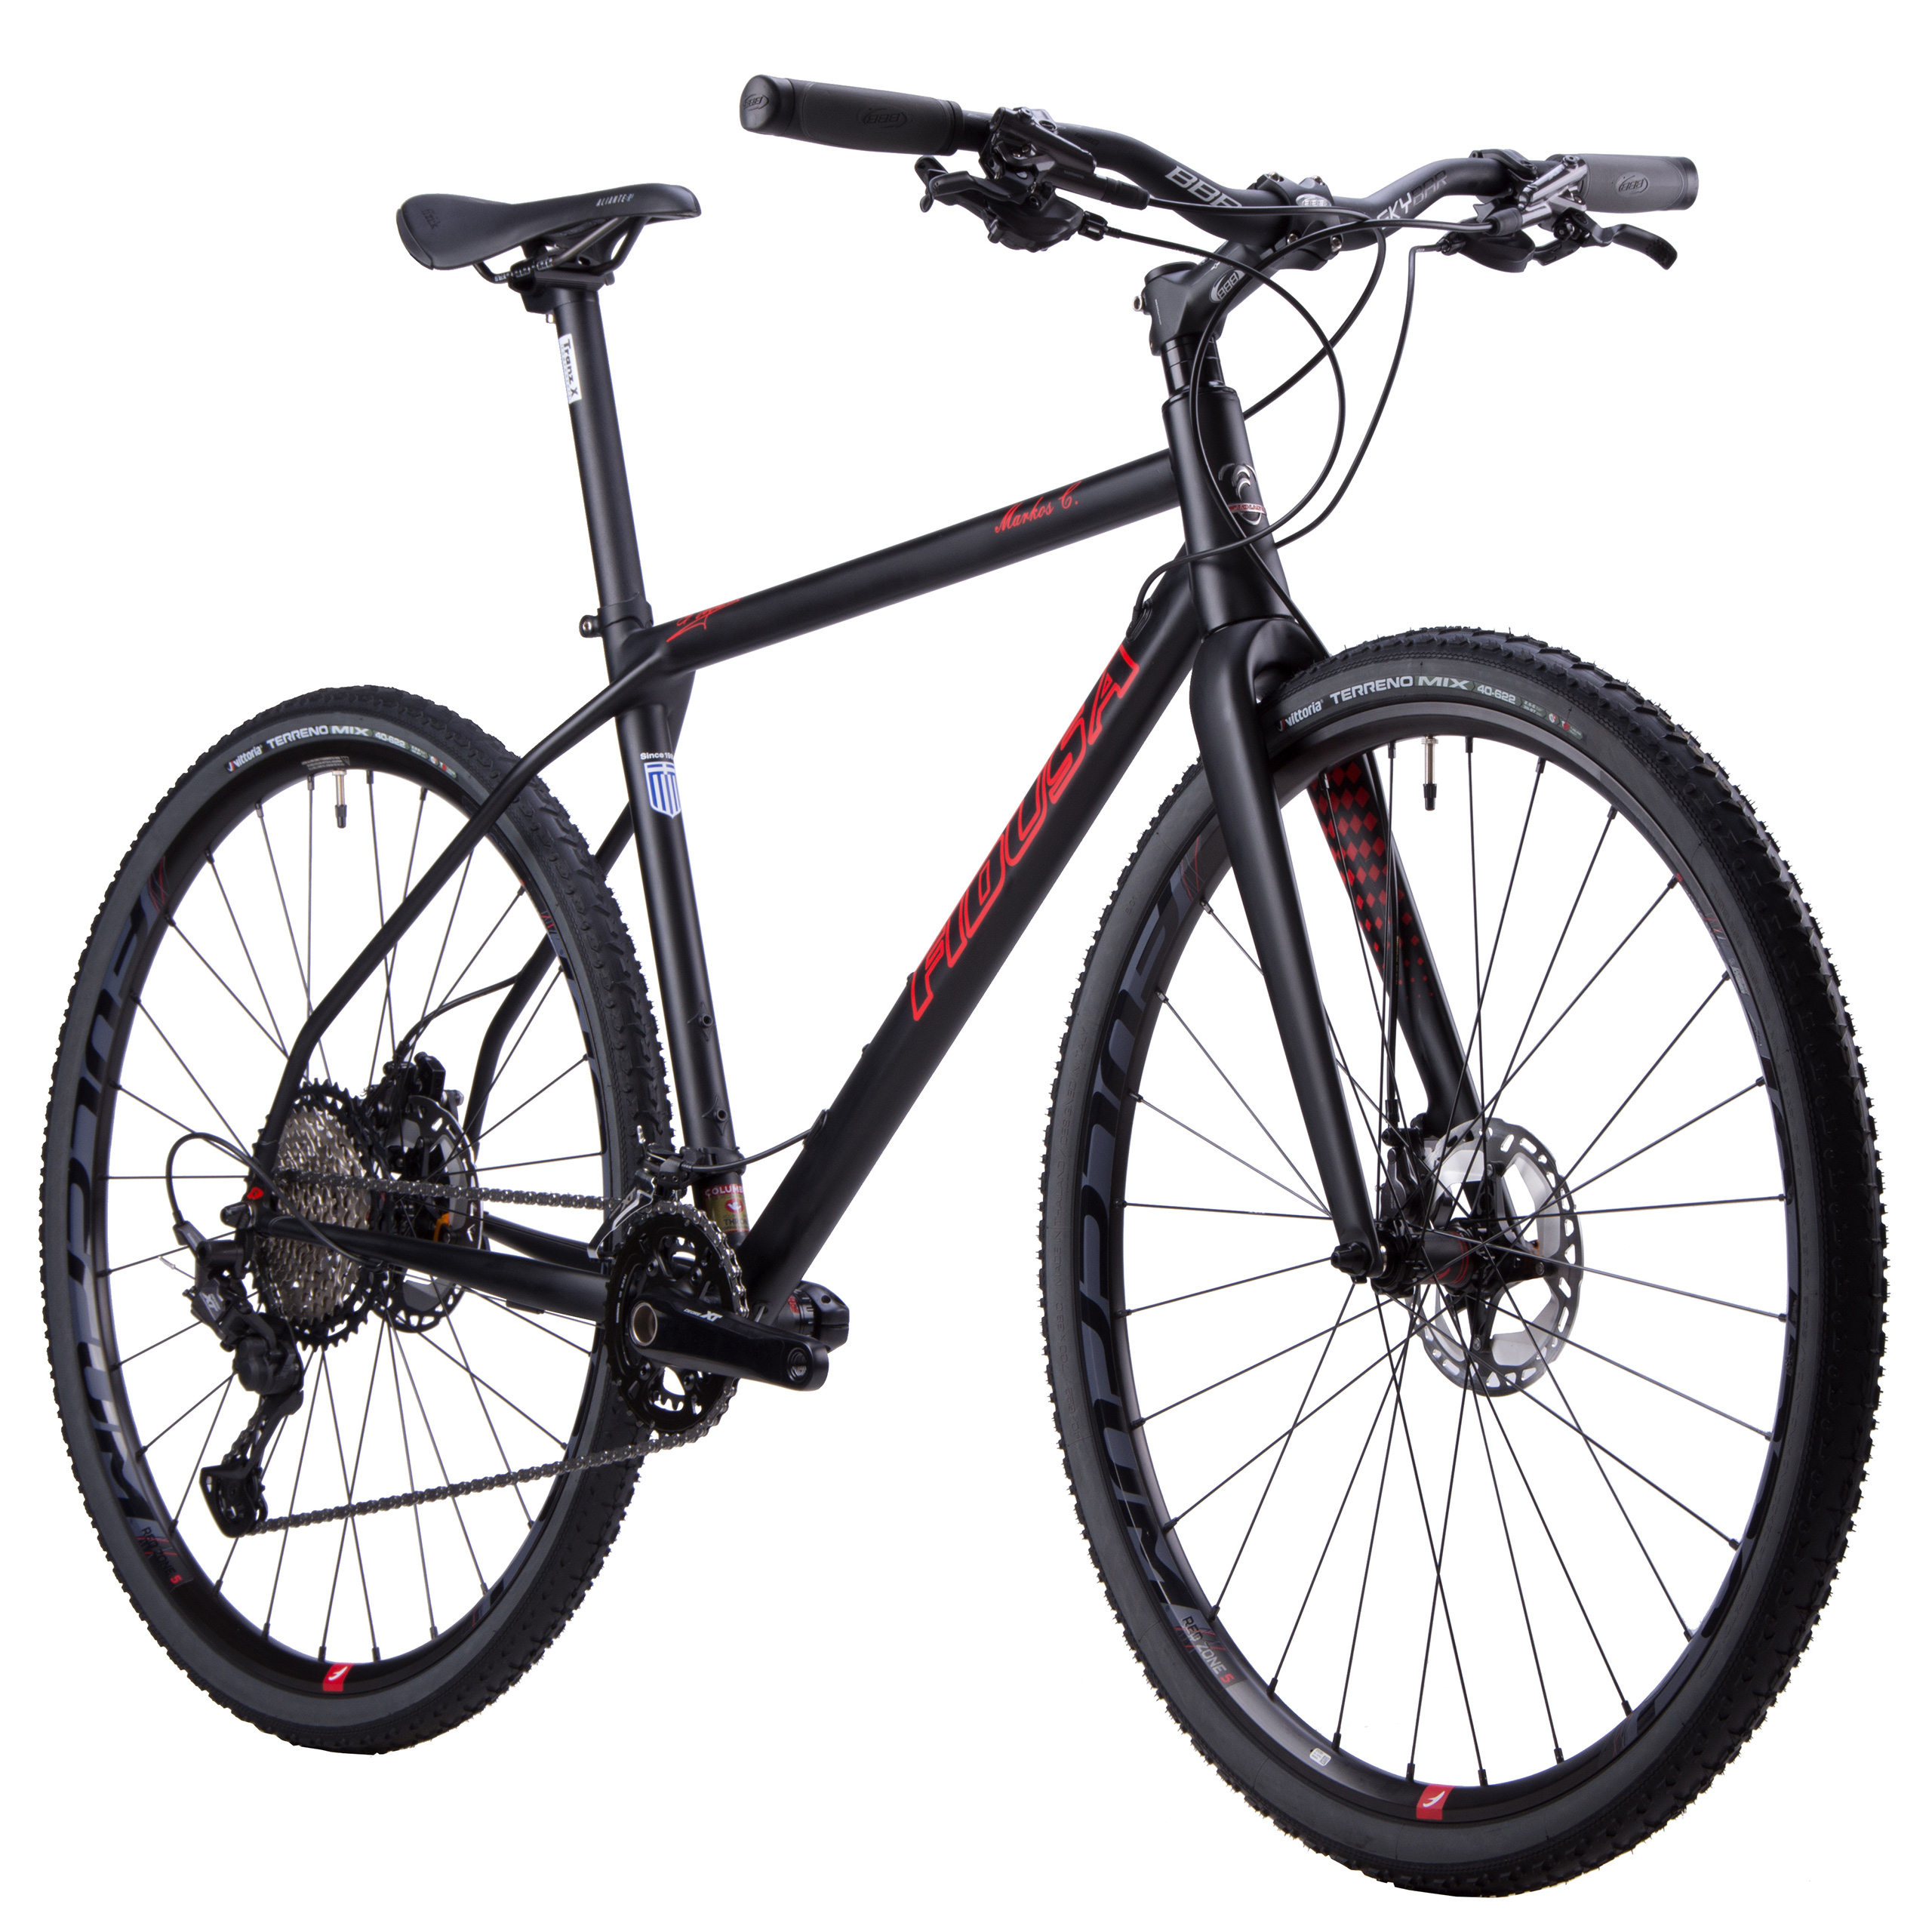 Fidusa-Cr-Mo-trekking-black-red-bike-front Ποδήλατα